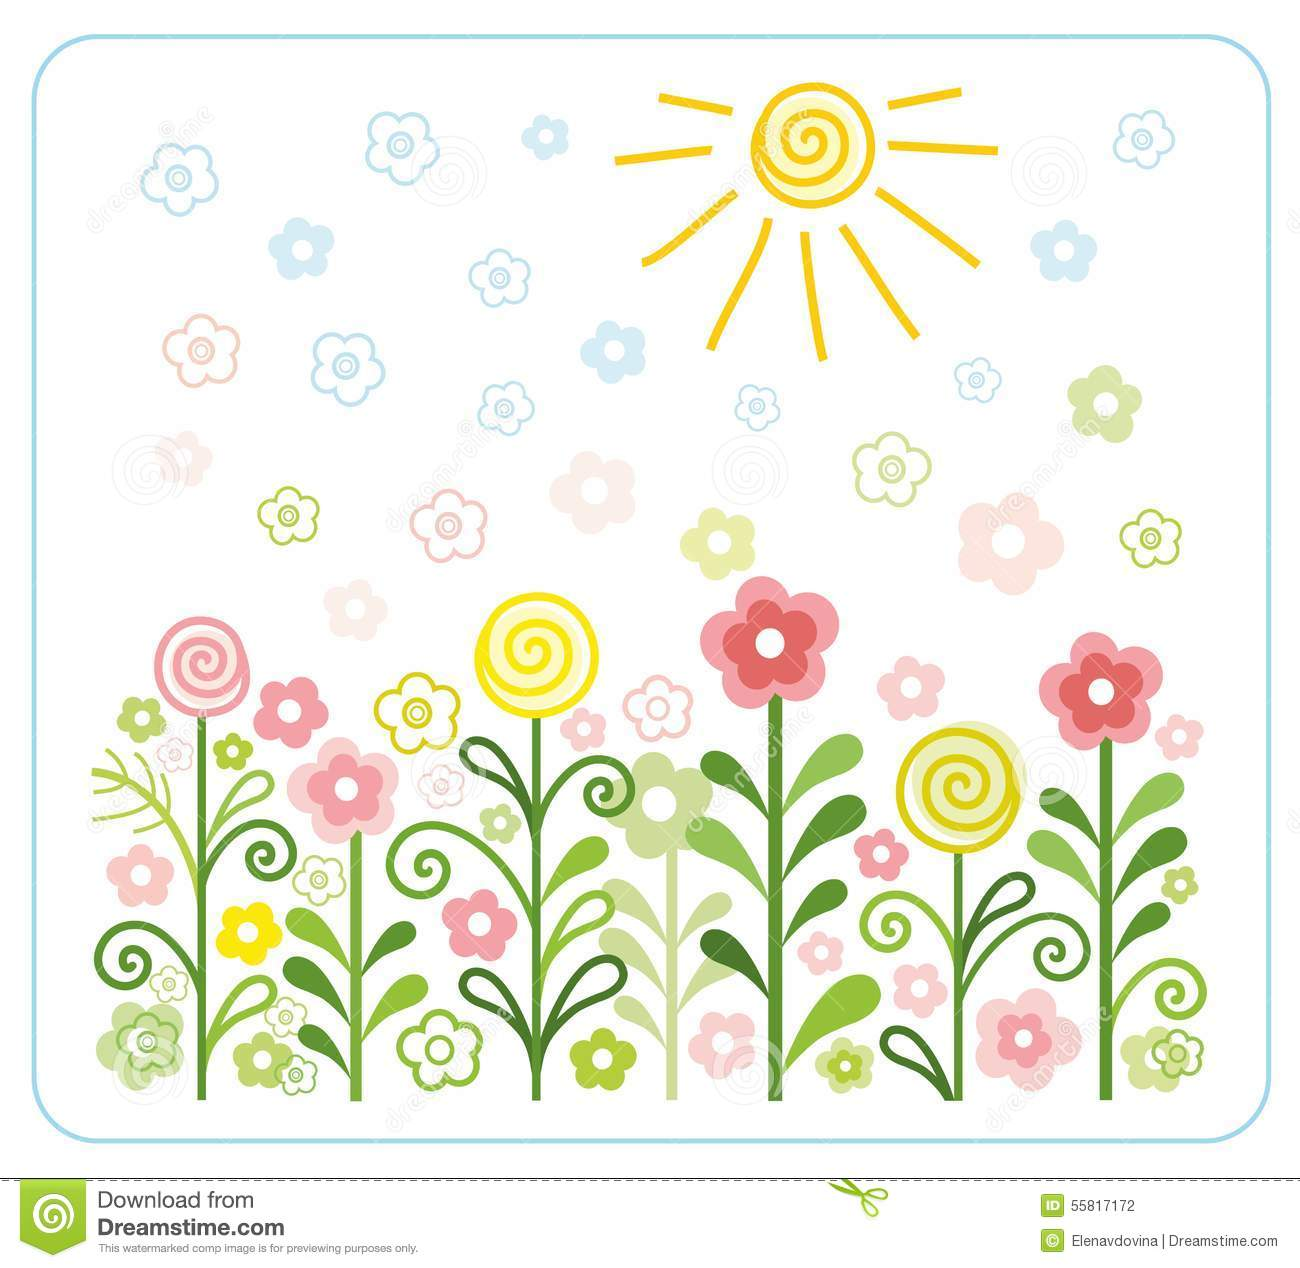 Flowers, Sun, Children, Flat, Coloured Illustrations. Stock Vector.